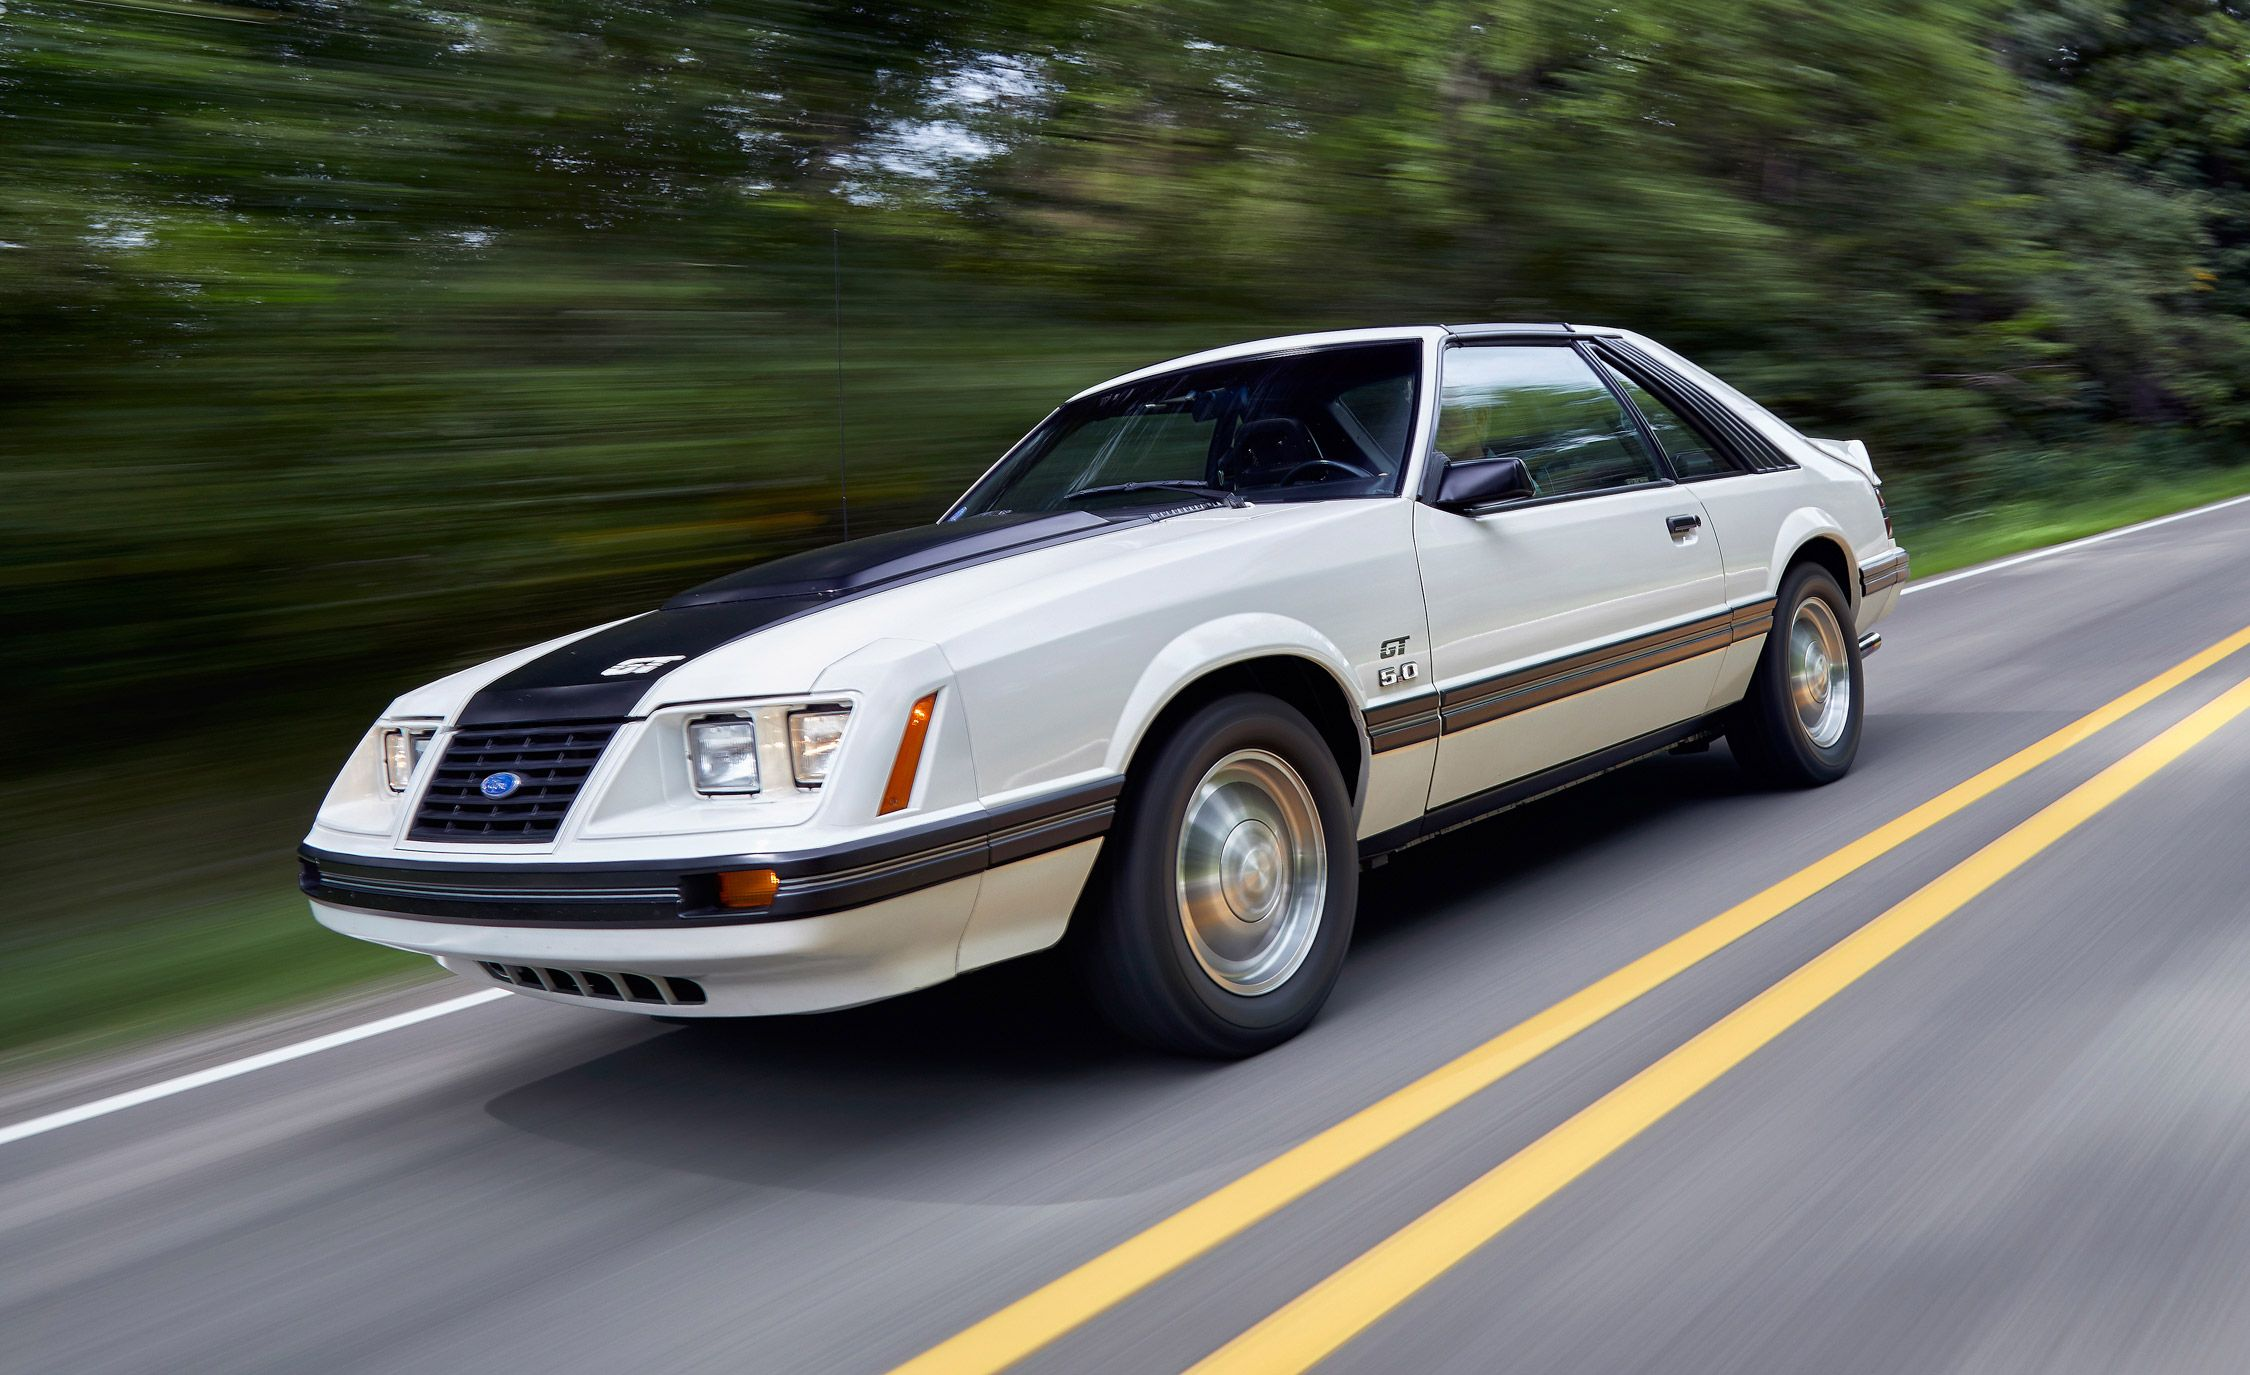 1983 Ford Mustang GT: Driving an Original 10Best Cars Winner